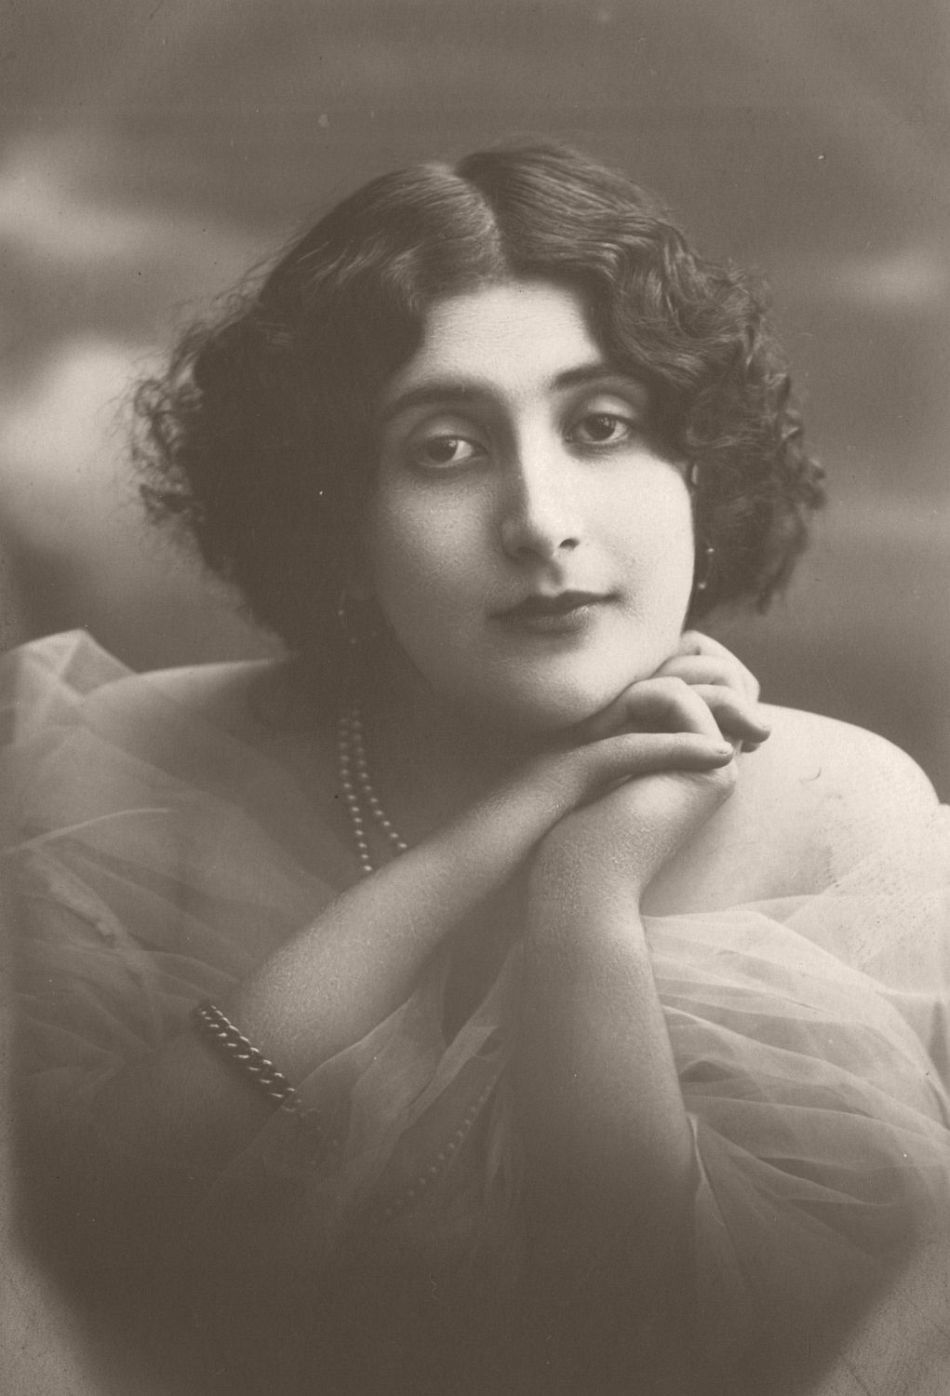 Lina Cavalieri (1875 – 1944) was born near Rome, orphaned at 15, her voice and beauty quickly made her an opera star. Retiring from the stage in 1914, she opened a beauty salon in Paris, and became a film actor in Italy until WWI when she moved to the USA to make more films.